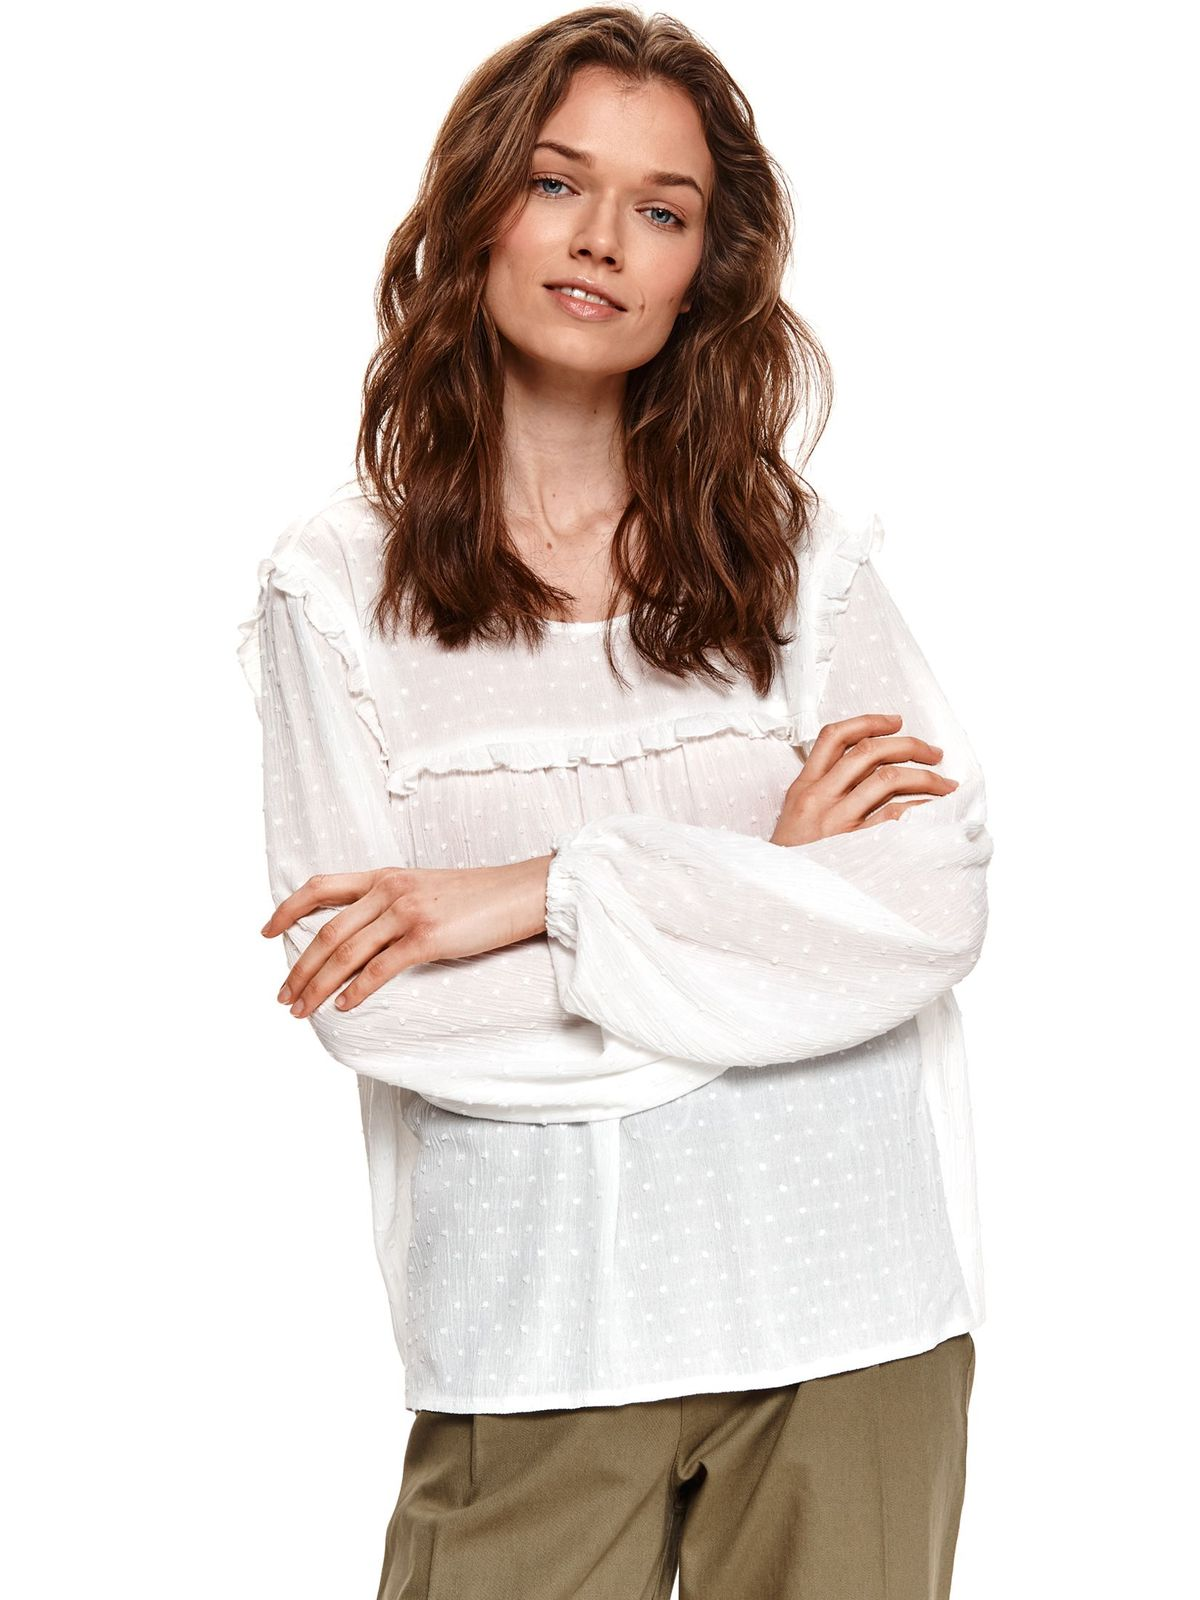 Plumeti loose fit with ruffle details white women`s blouse